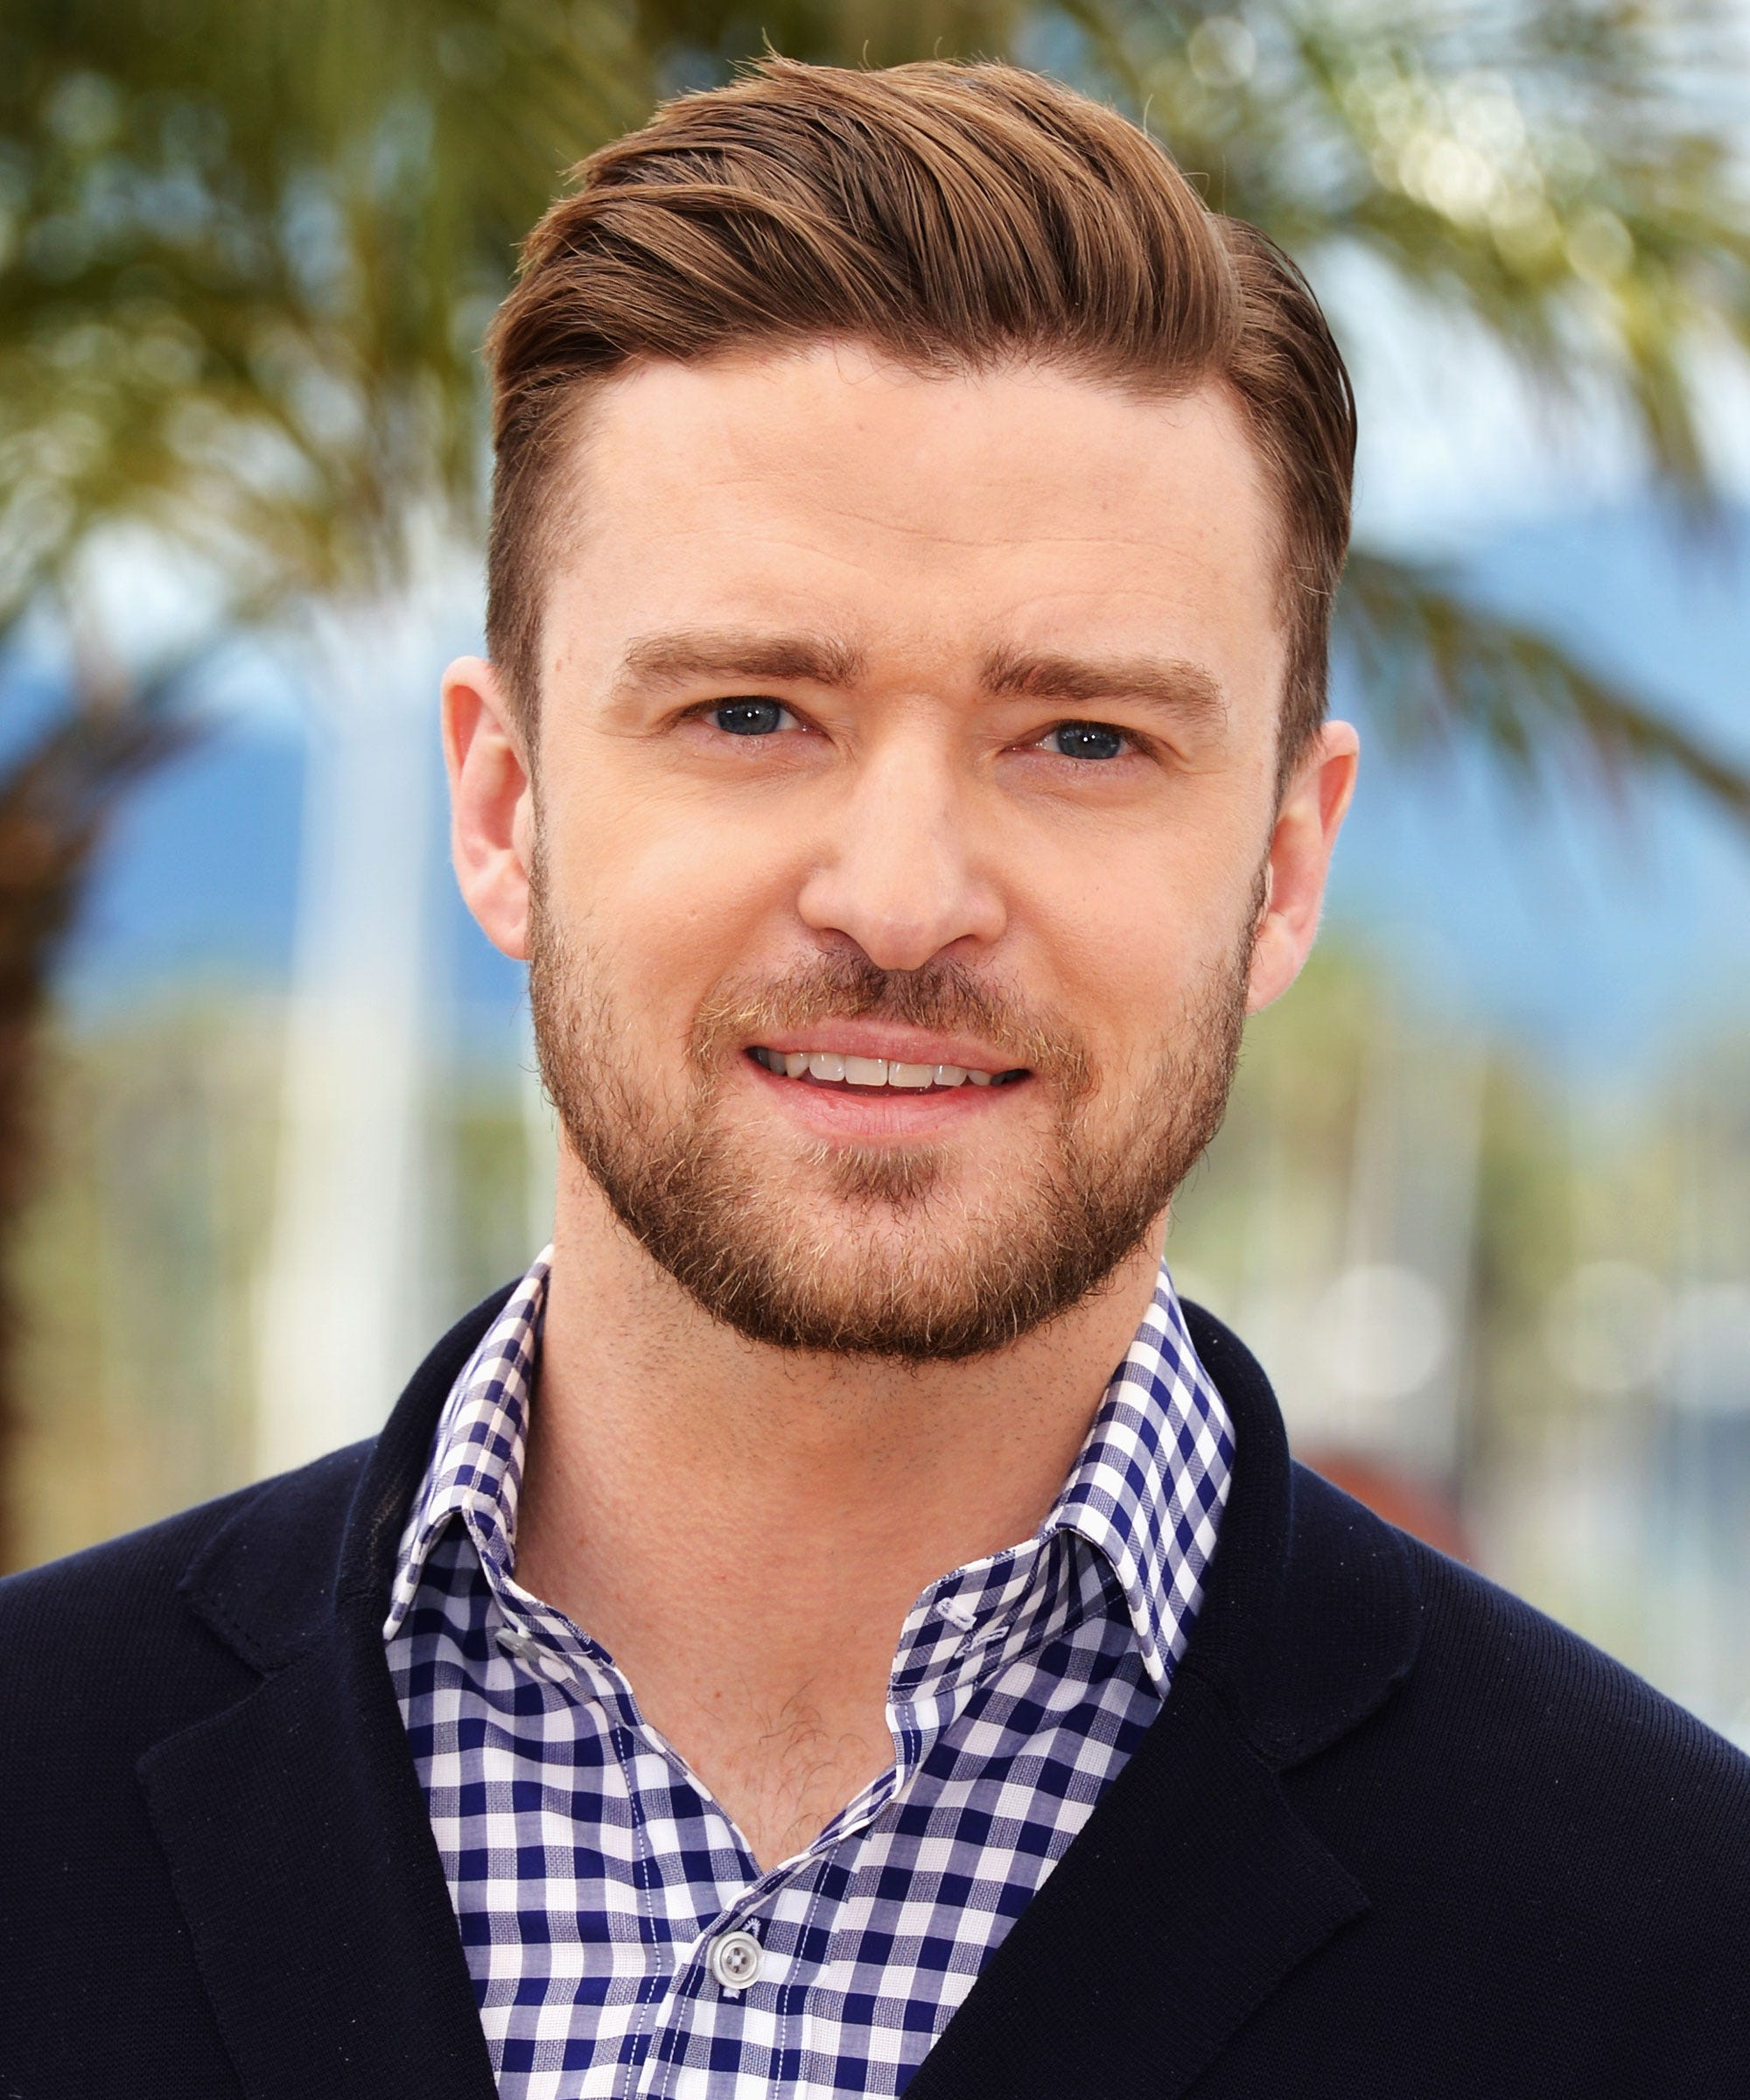 Justin timberlake hair style transformation throwback urmus Choice Image